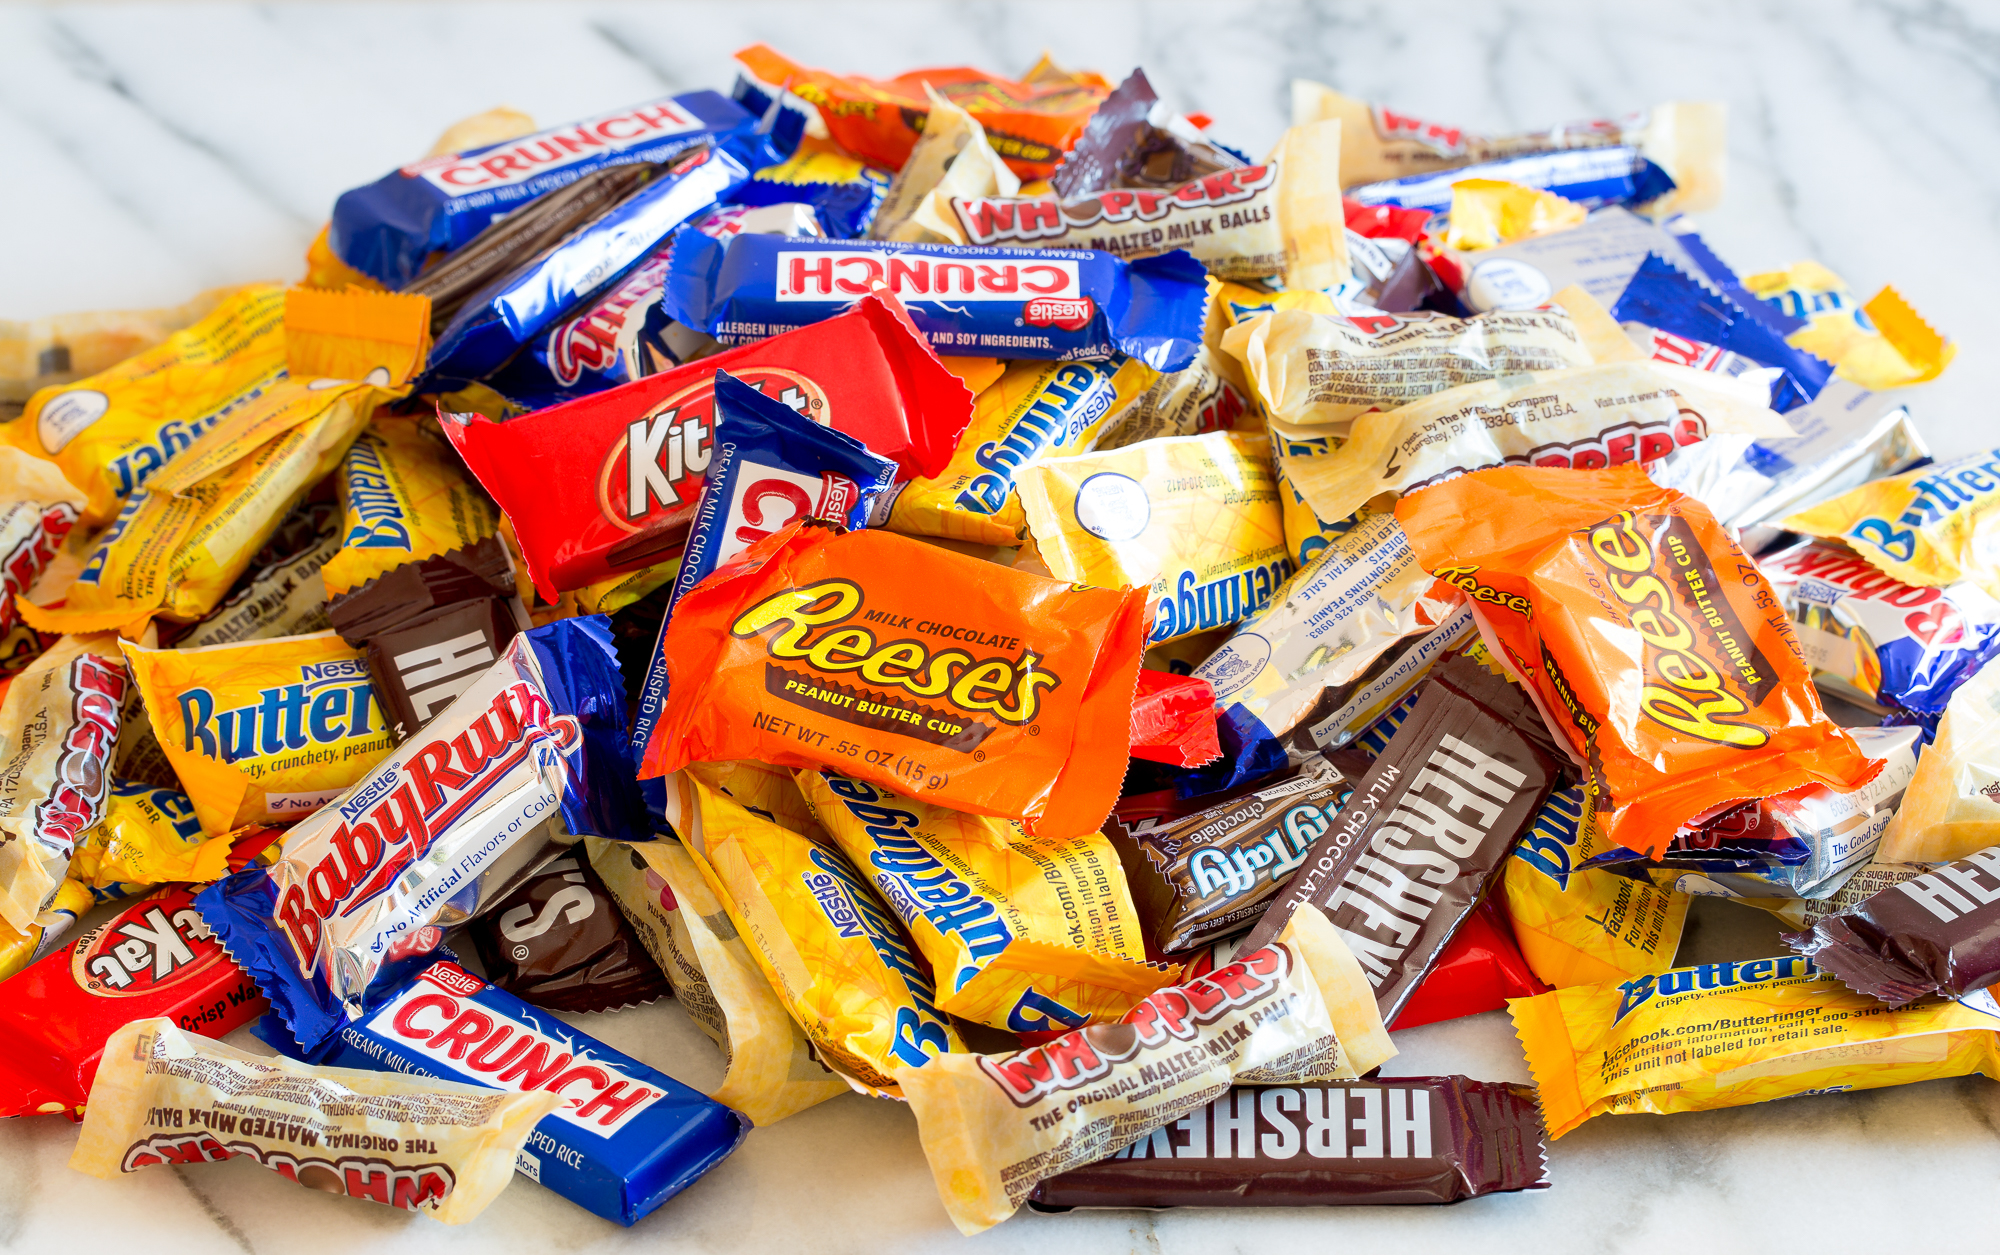 2. Donating Candy - Simply put, it takes A LOT of candy to make Treat Street a success. You can help us out greatly by donating bags of snack-sized candy . Candy drop-off locations can be found in various locations around the church for the next few weeks.